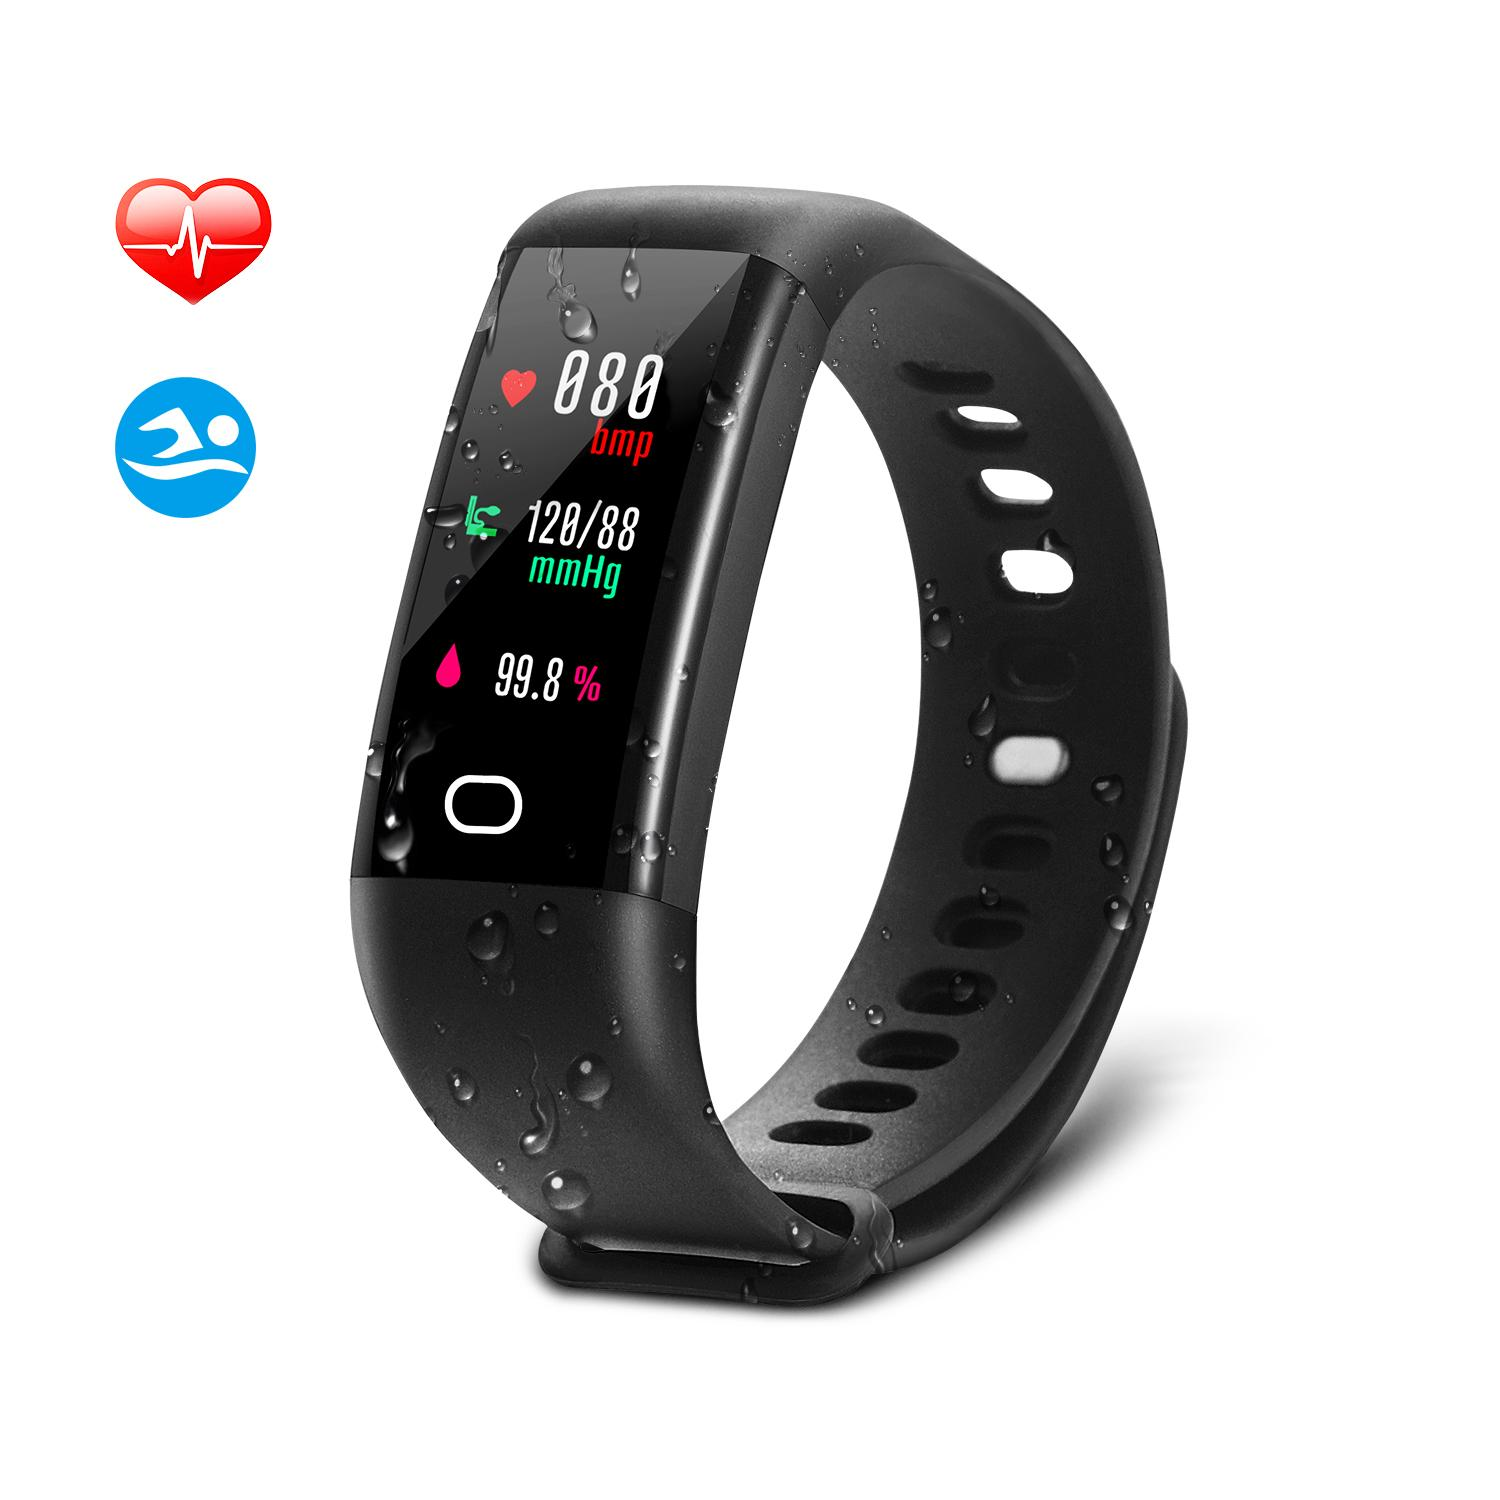 drillpro step remote watches fitness control tracker pin wireless consumption calls sms activity hr oled counter camera calorie